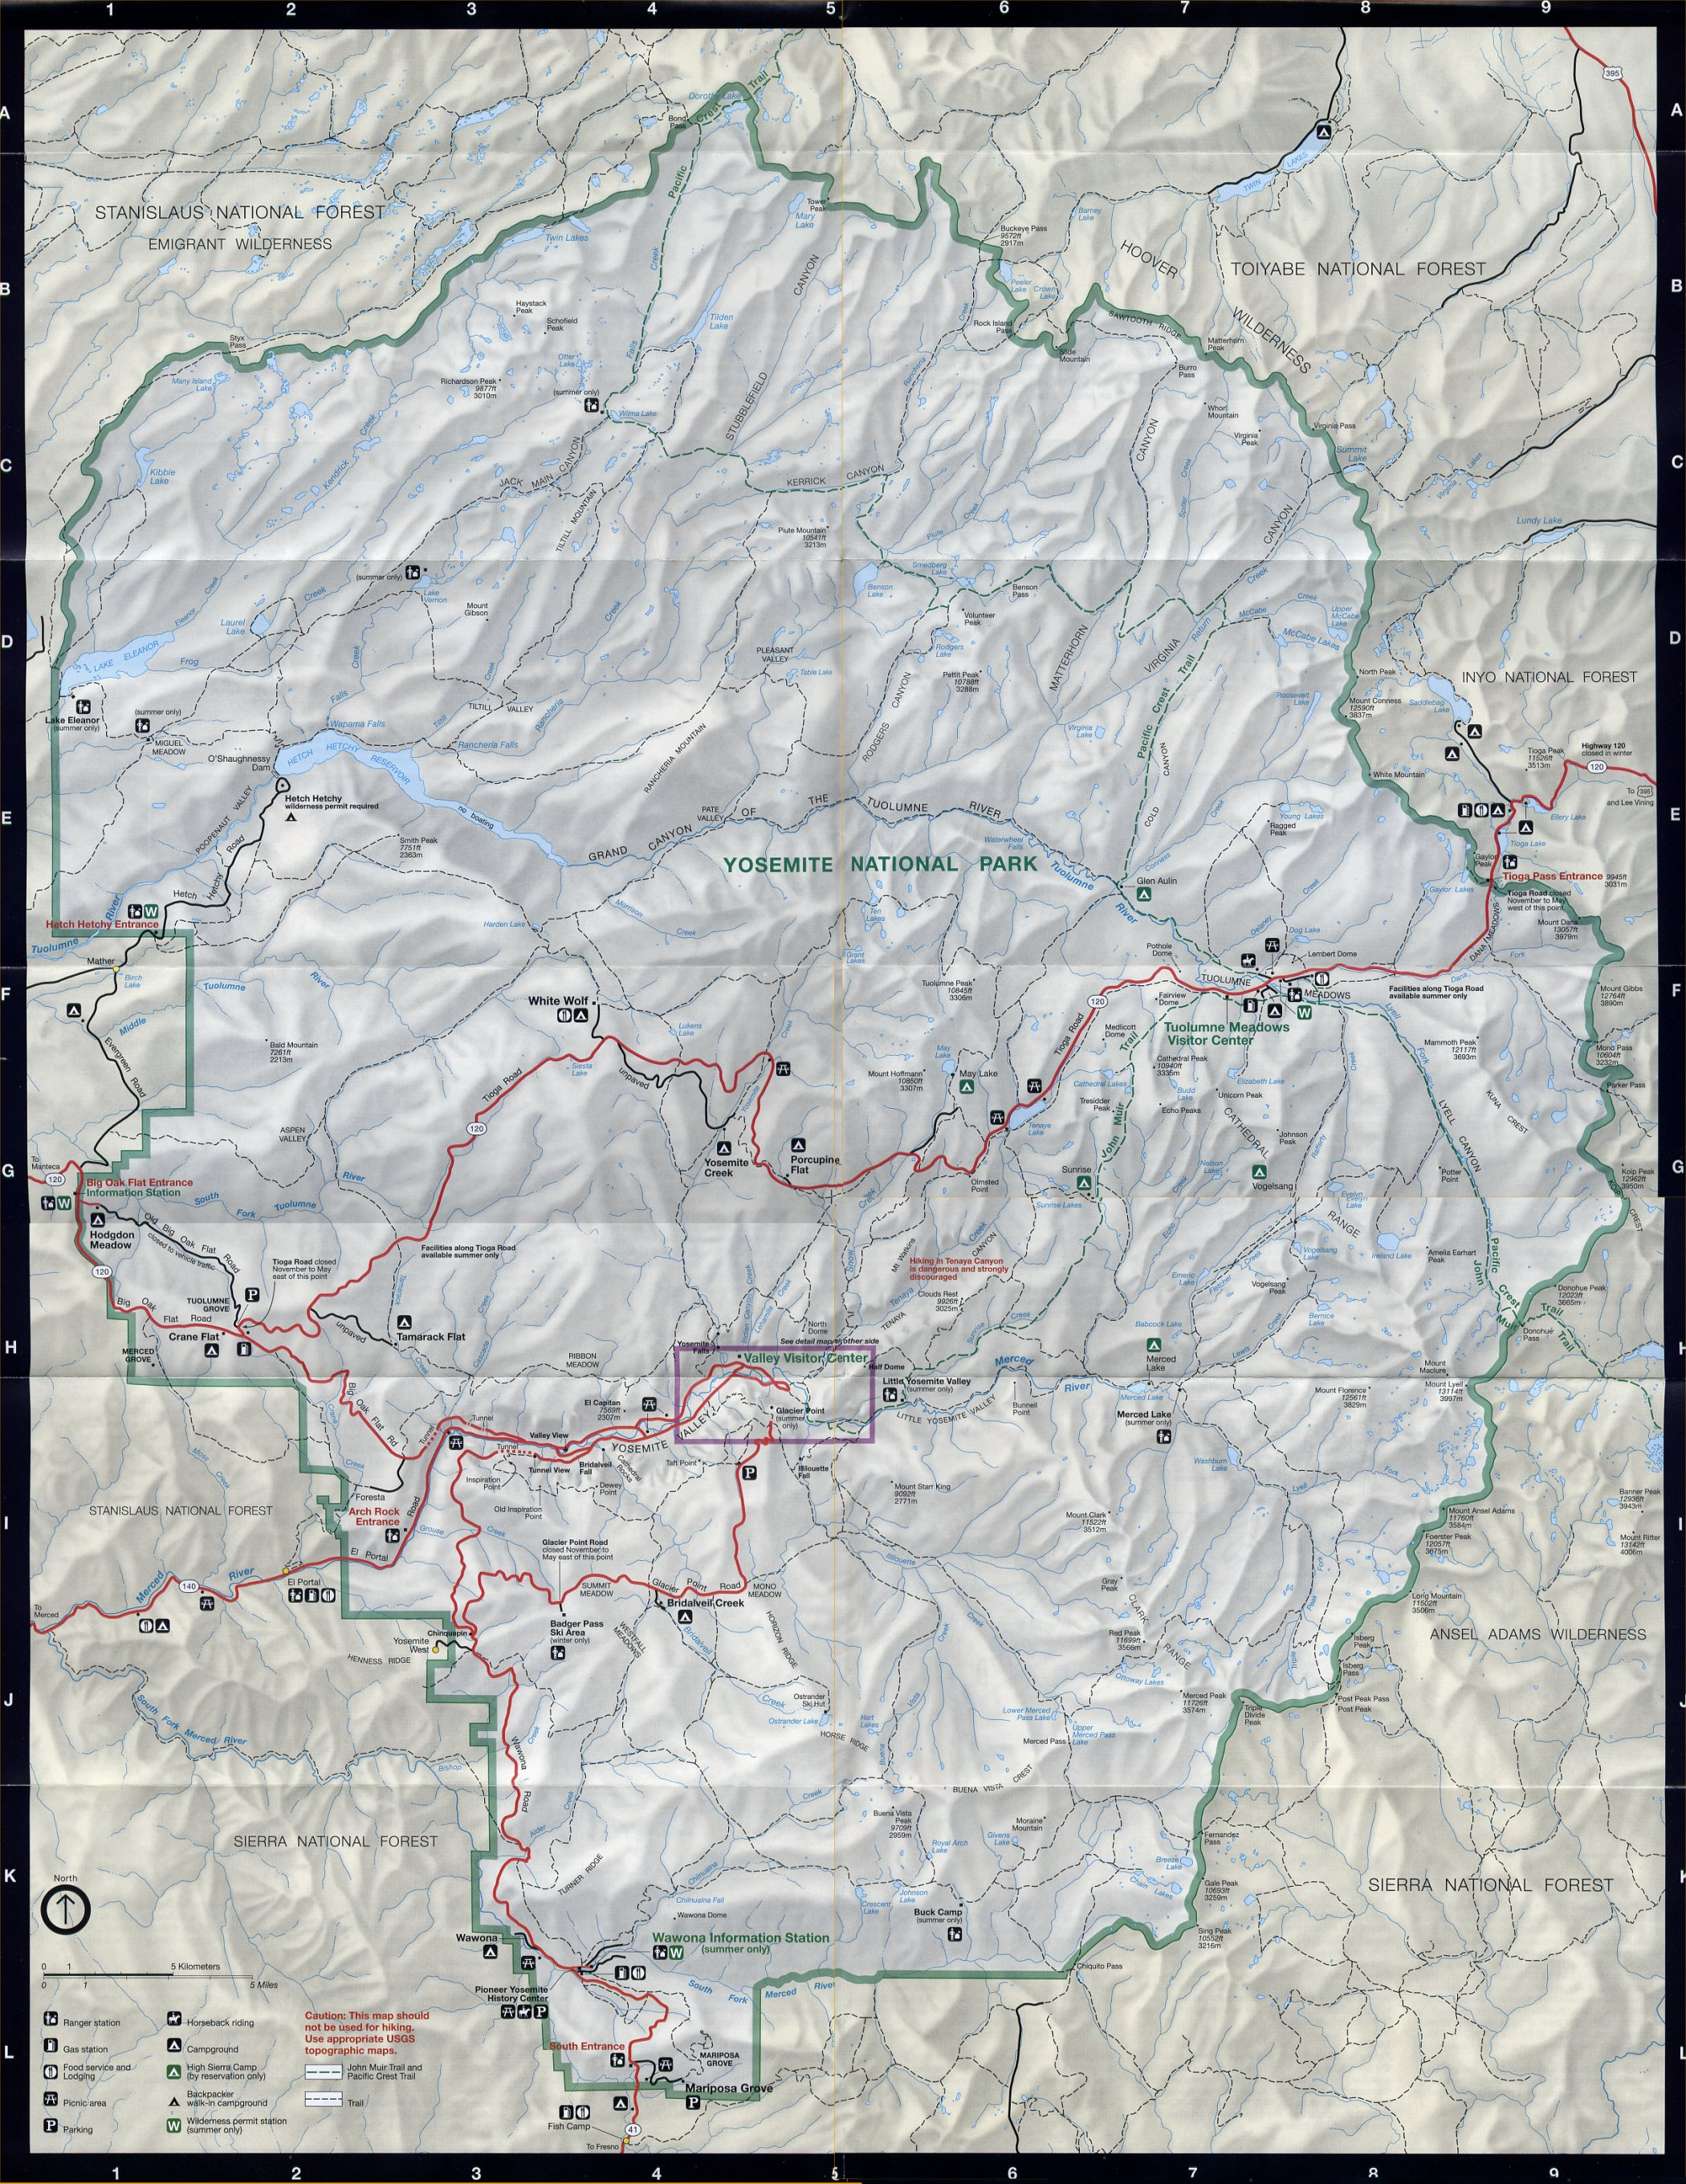 Yosemite Historic Maps Yosemite Library Online - Us national forest fire map